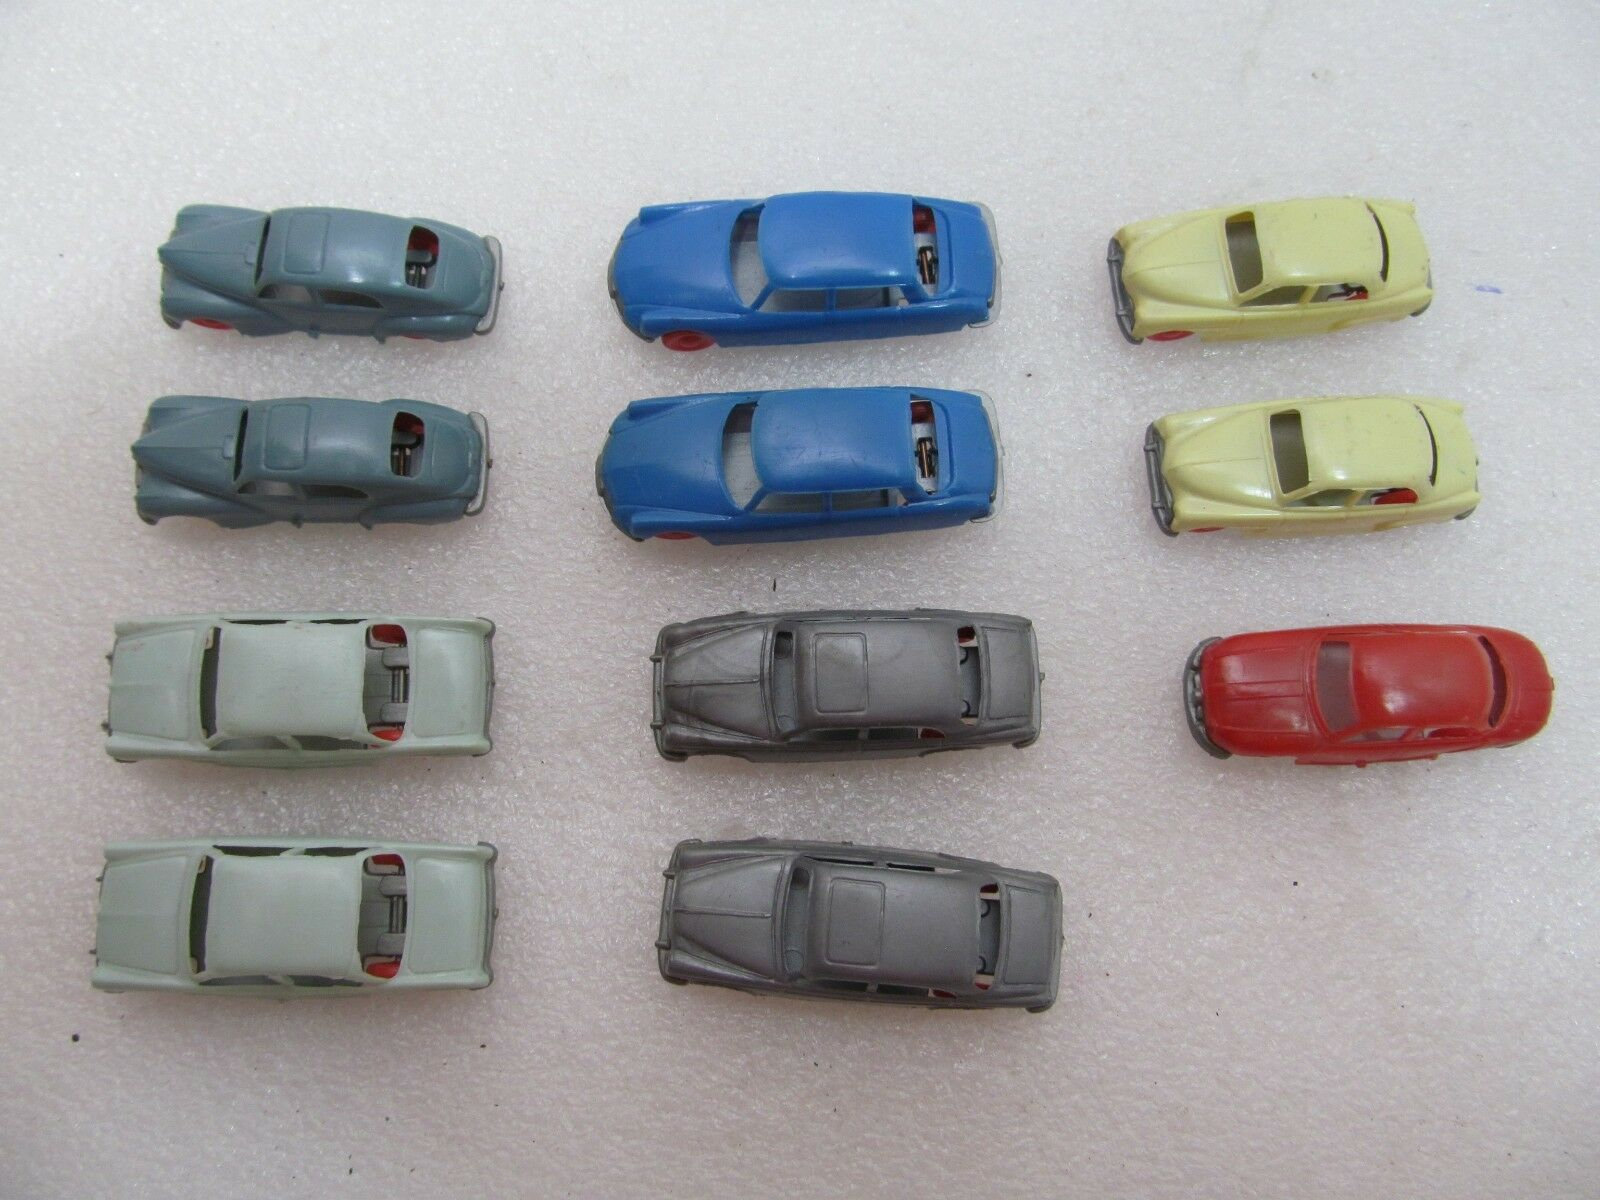 11 Rare Vintage Jouef HO Scale Automobiles Made in France